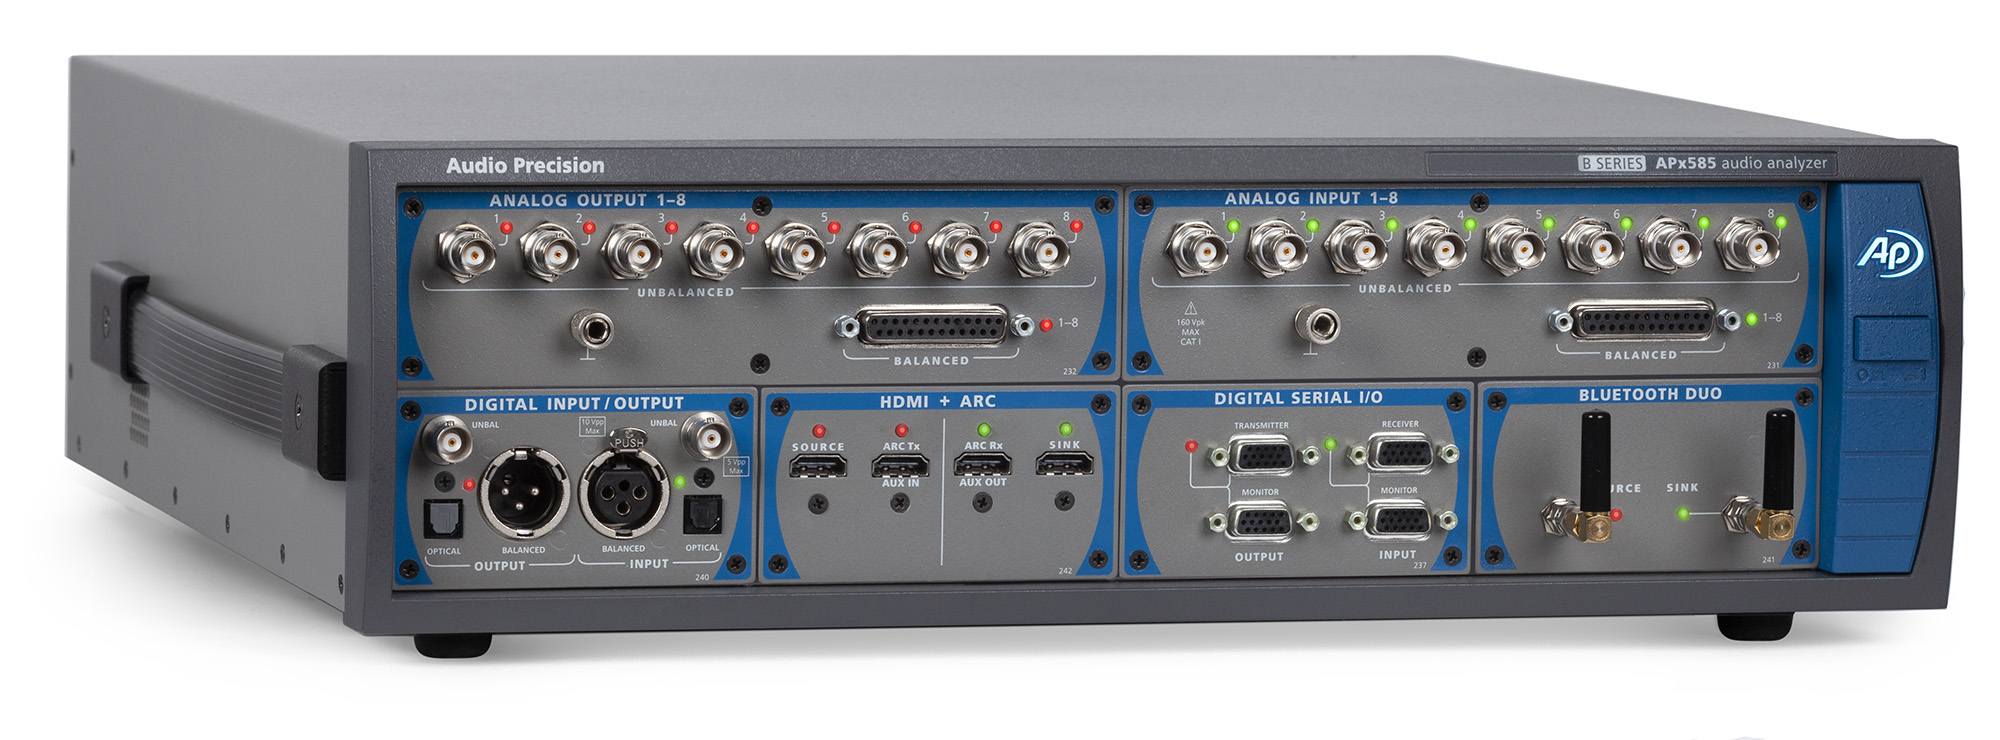 APx585 Audio Analyser front 3-4